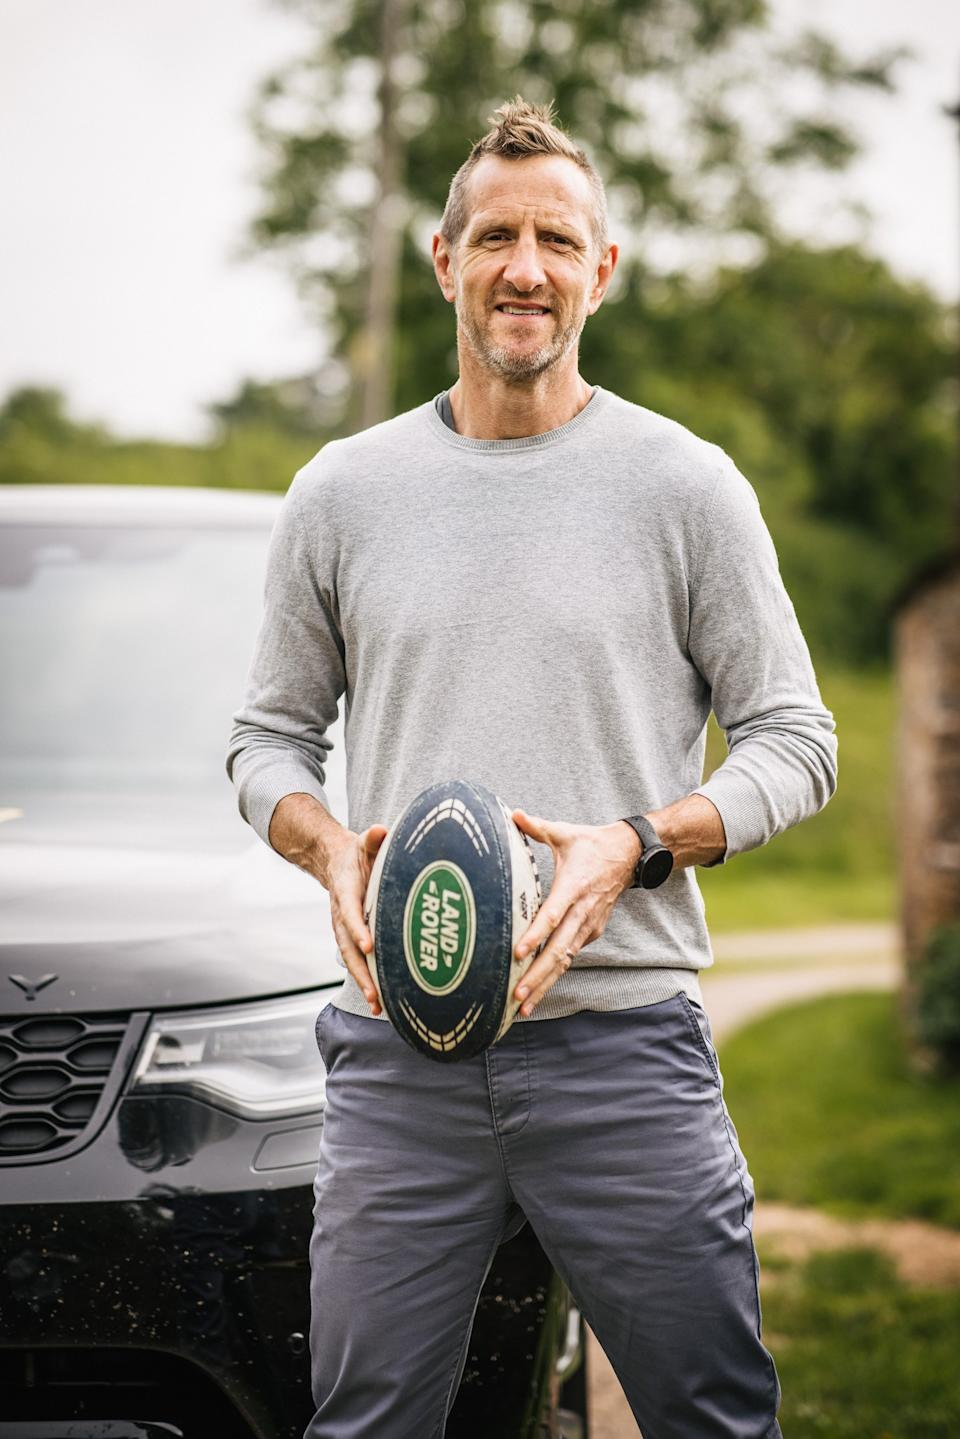 Will Greenwood, 48, was a three-time tourist in 1997, 2001 and 2005